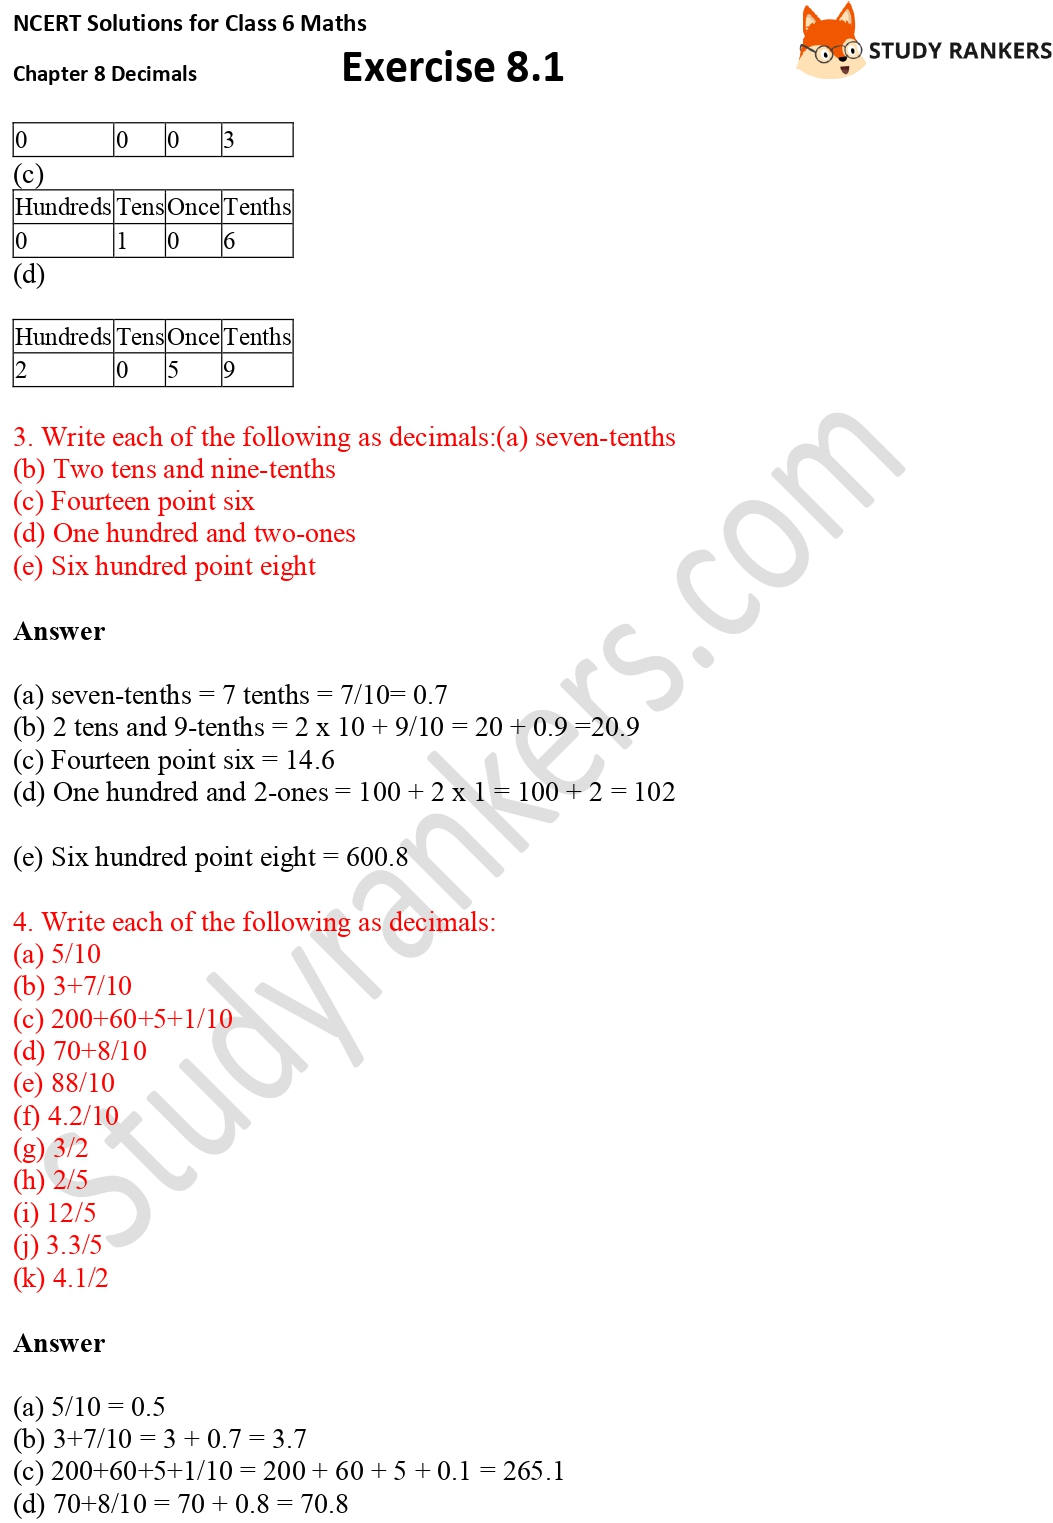 NCERT Solutions for Class 6 Maths Chapter 8 Decimals Exercise 8.1 Part 2